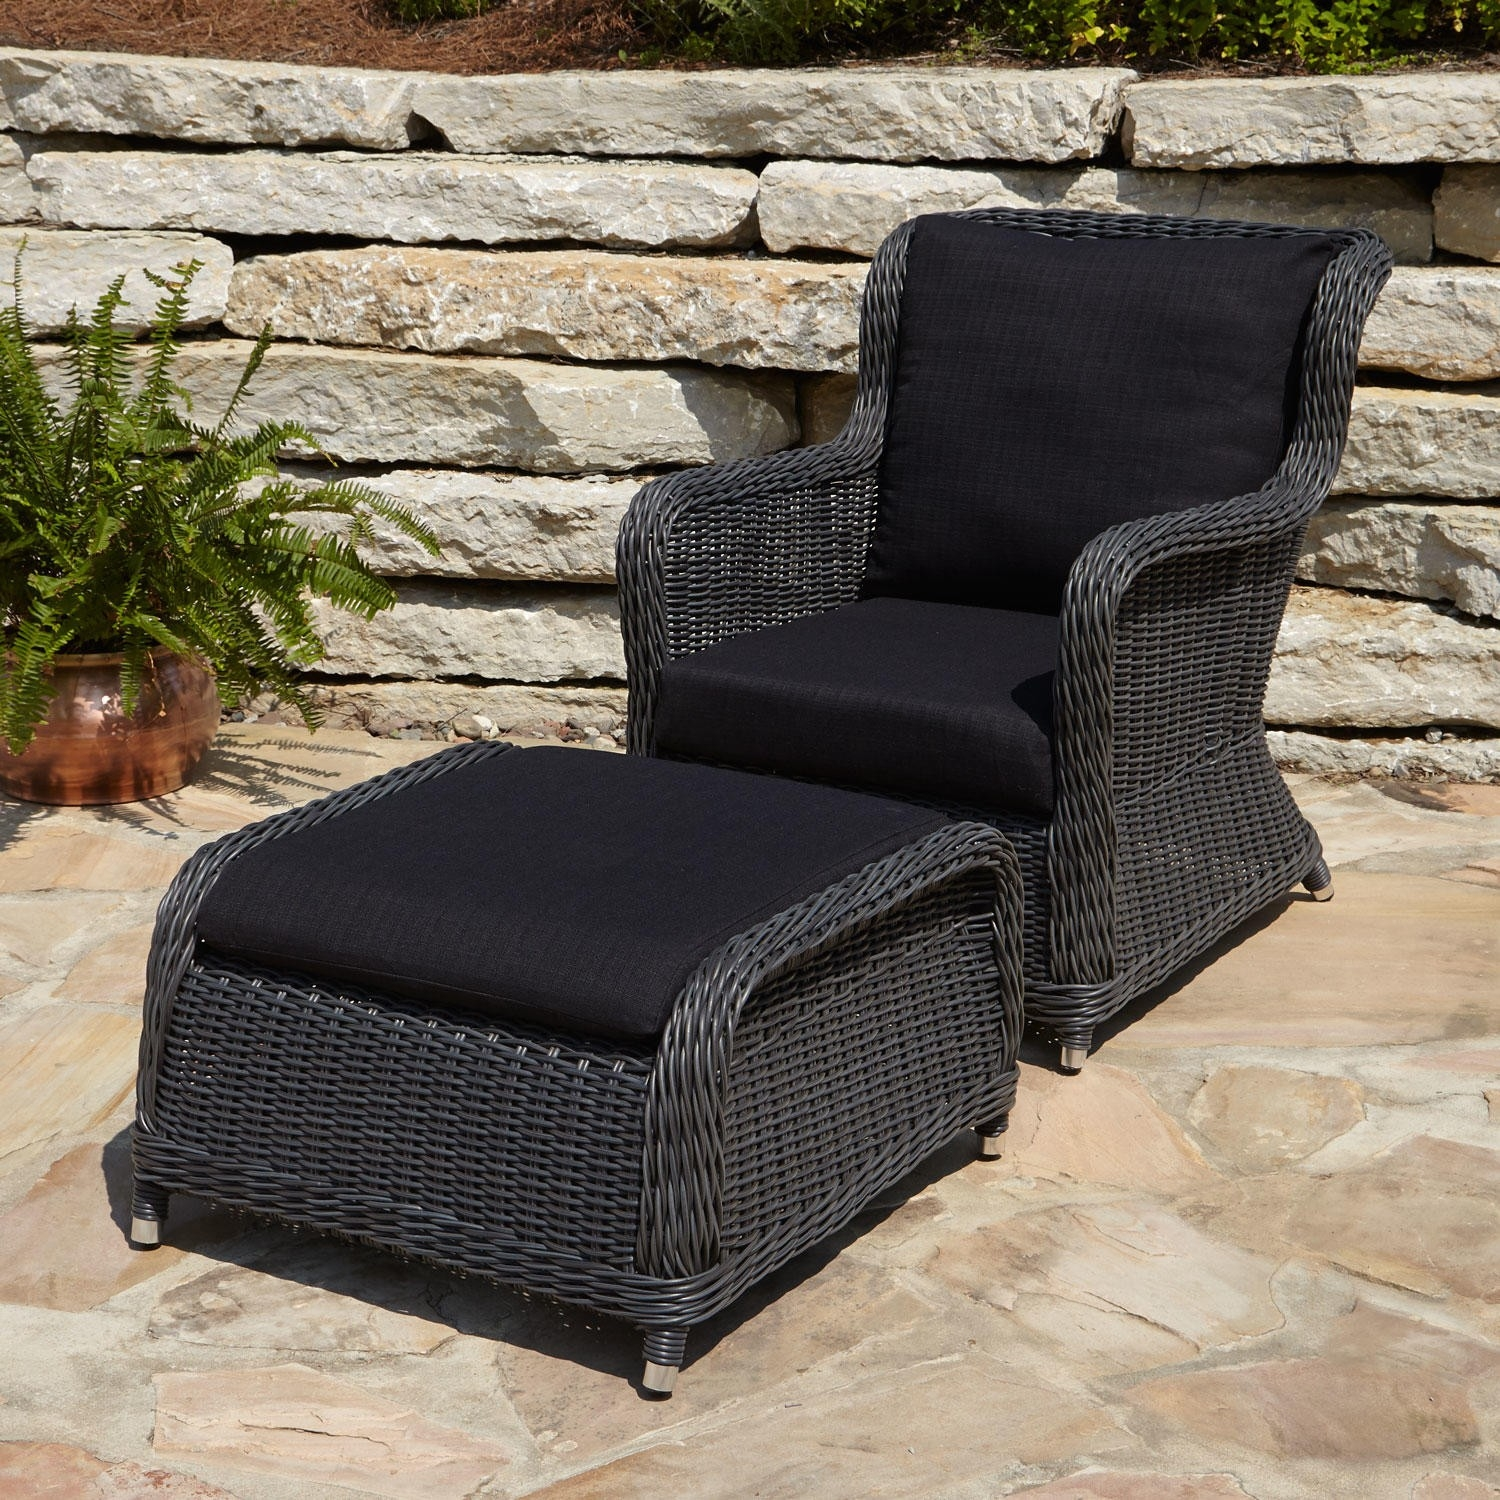 Pier One Wicker Furniture | Pier One Rattan Chairs | Pier One Table and Chairs